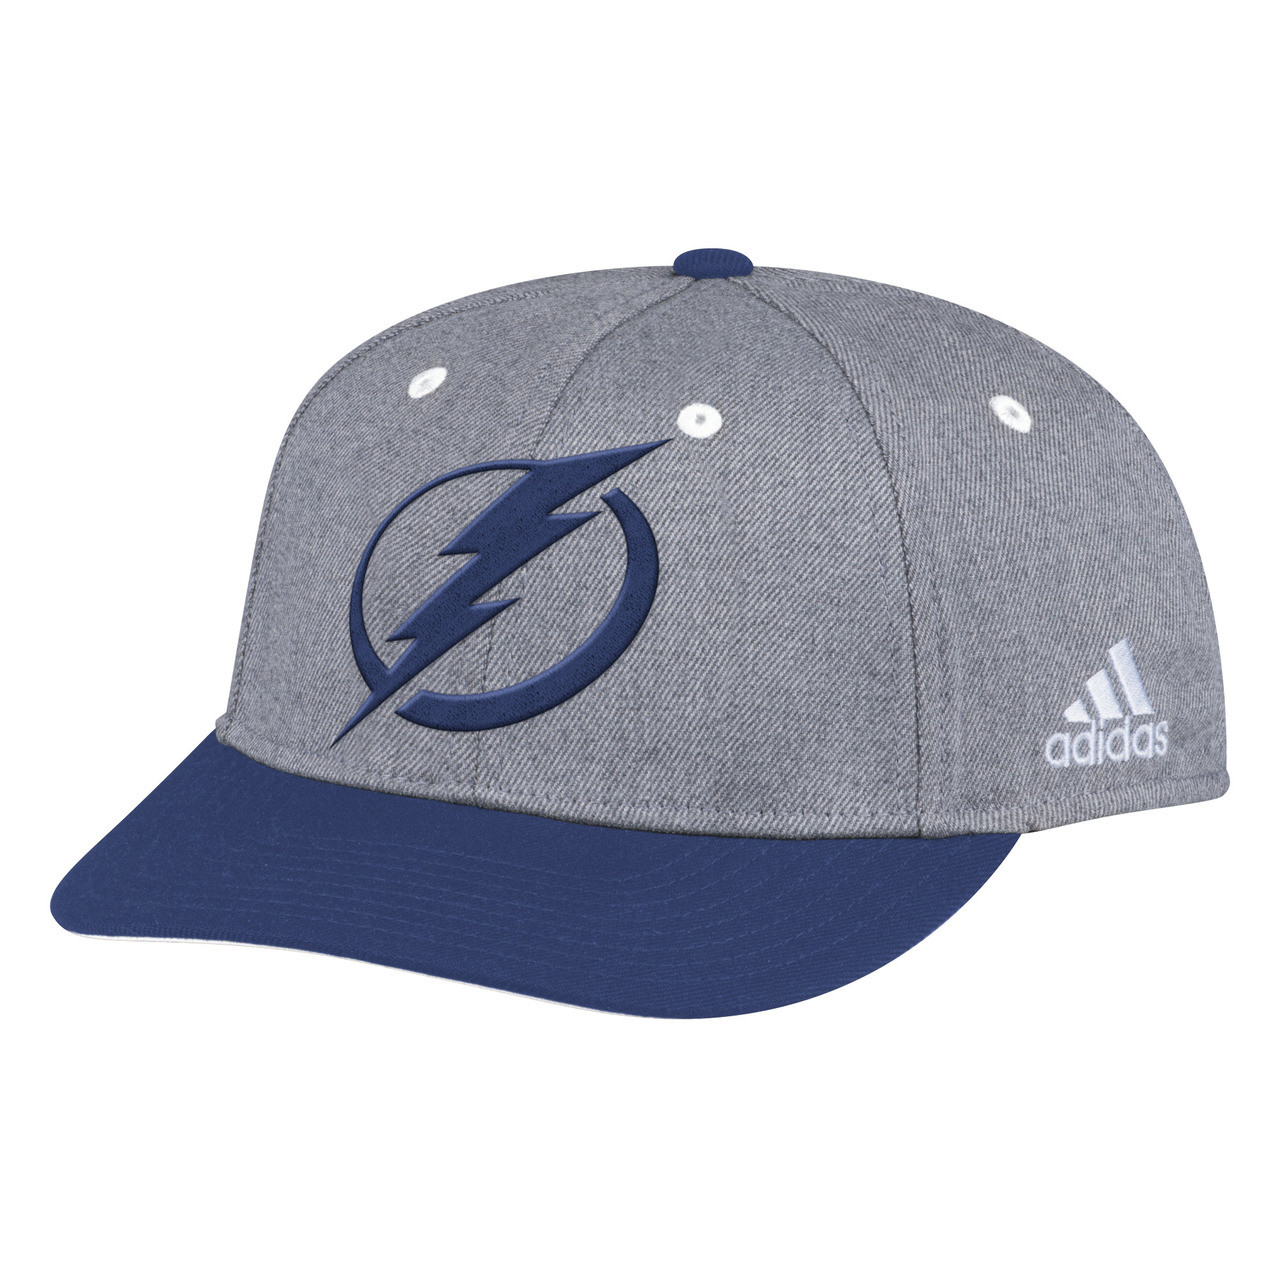 e41e32b8 Tampa Bay Lightning adidas Two Tone Structured Adjustable Hat. Adidas